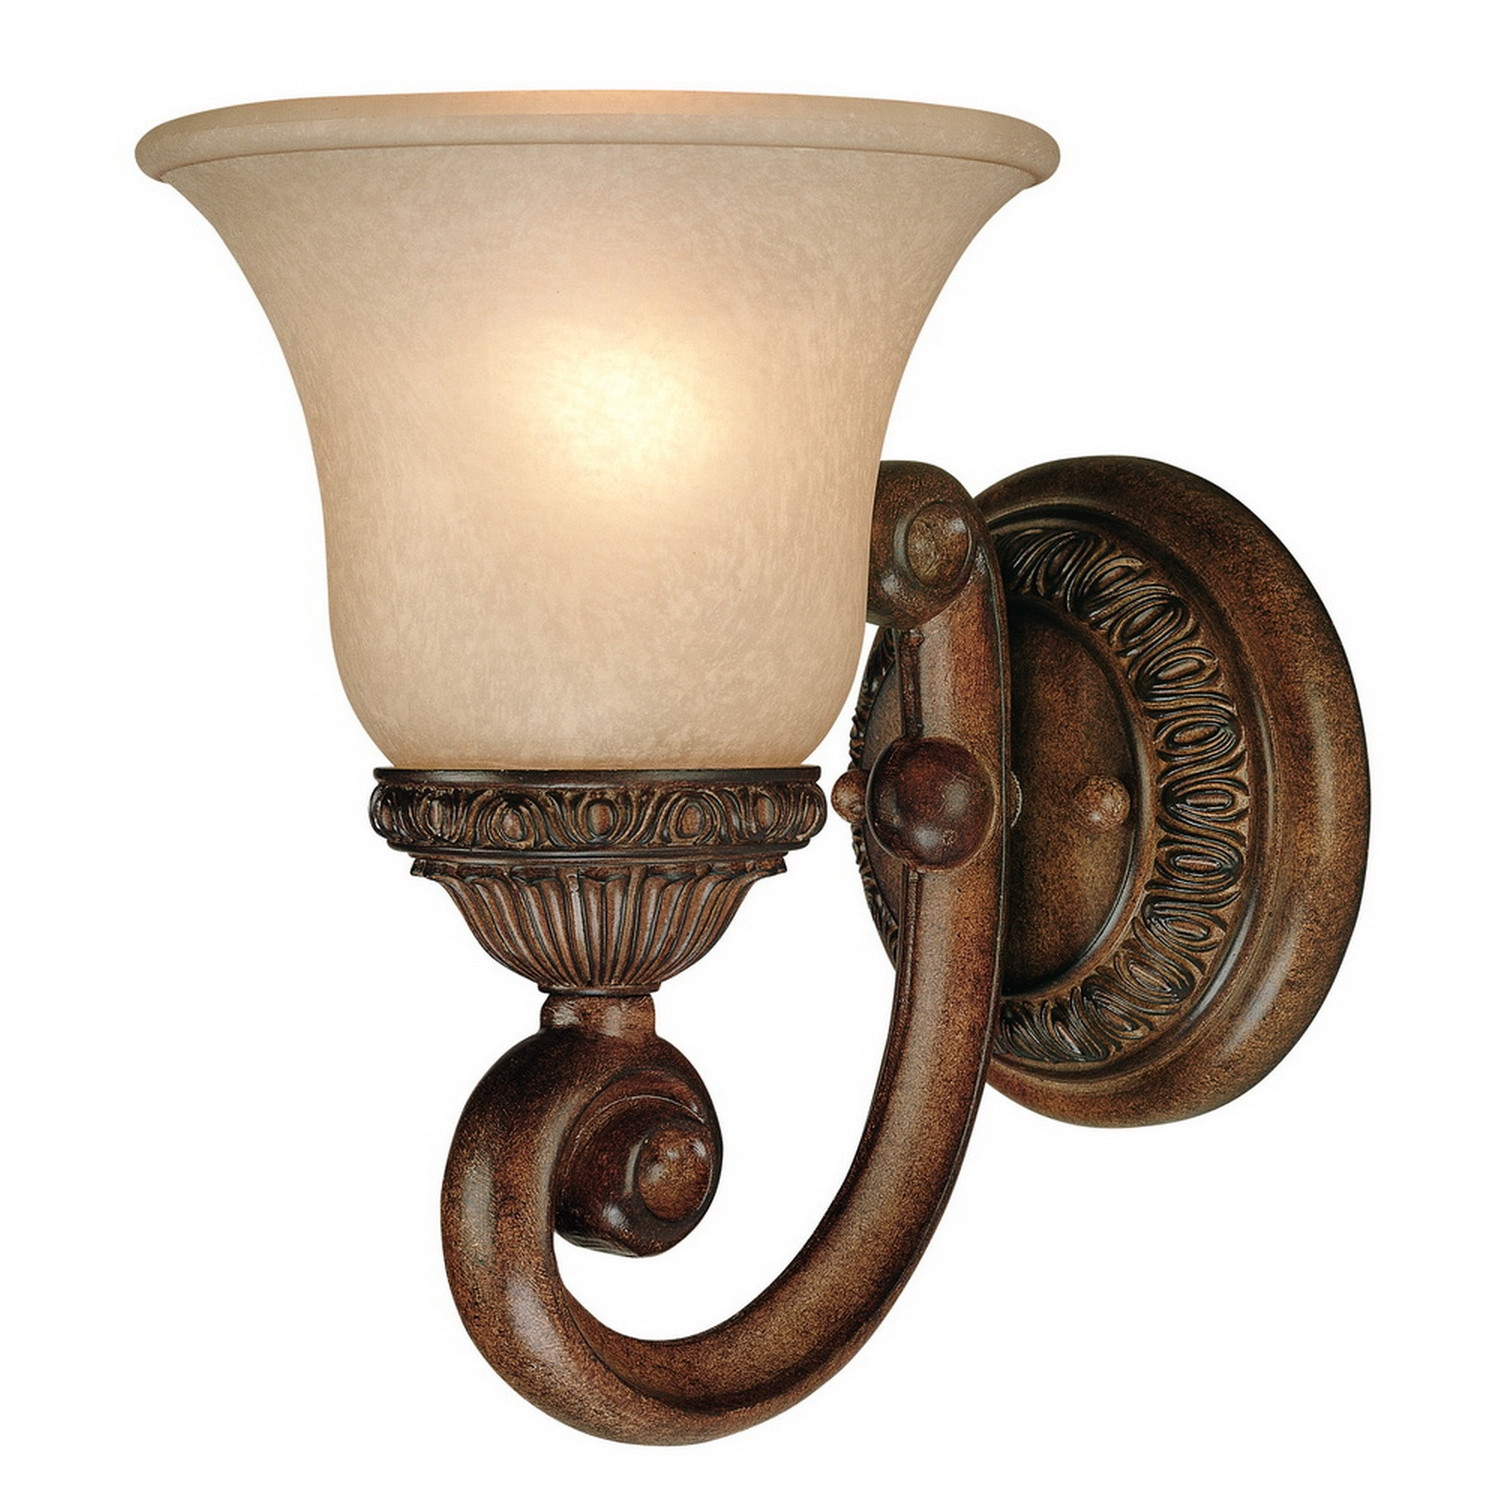 Carlyle One Light Wall Sconce 2406 54